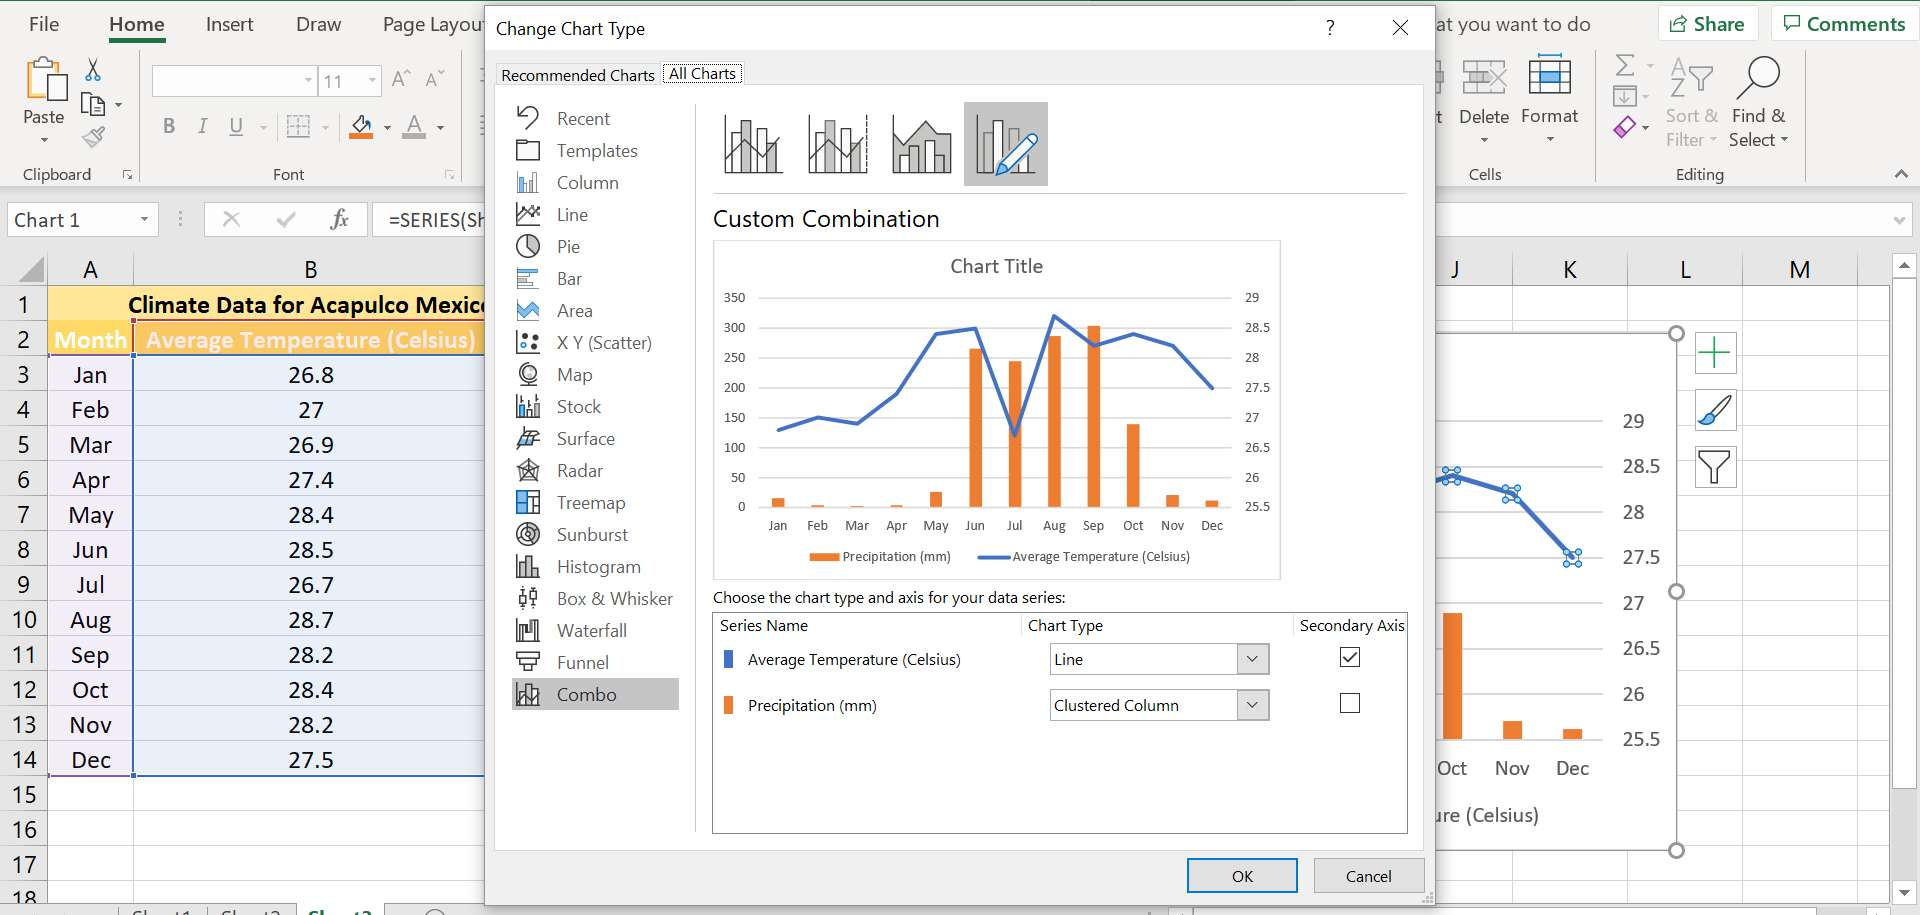 The Change Chart Type dialog box in Excel